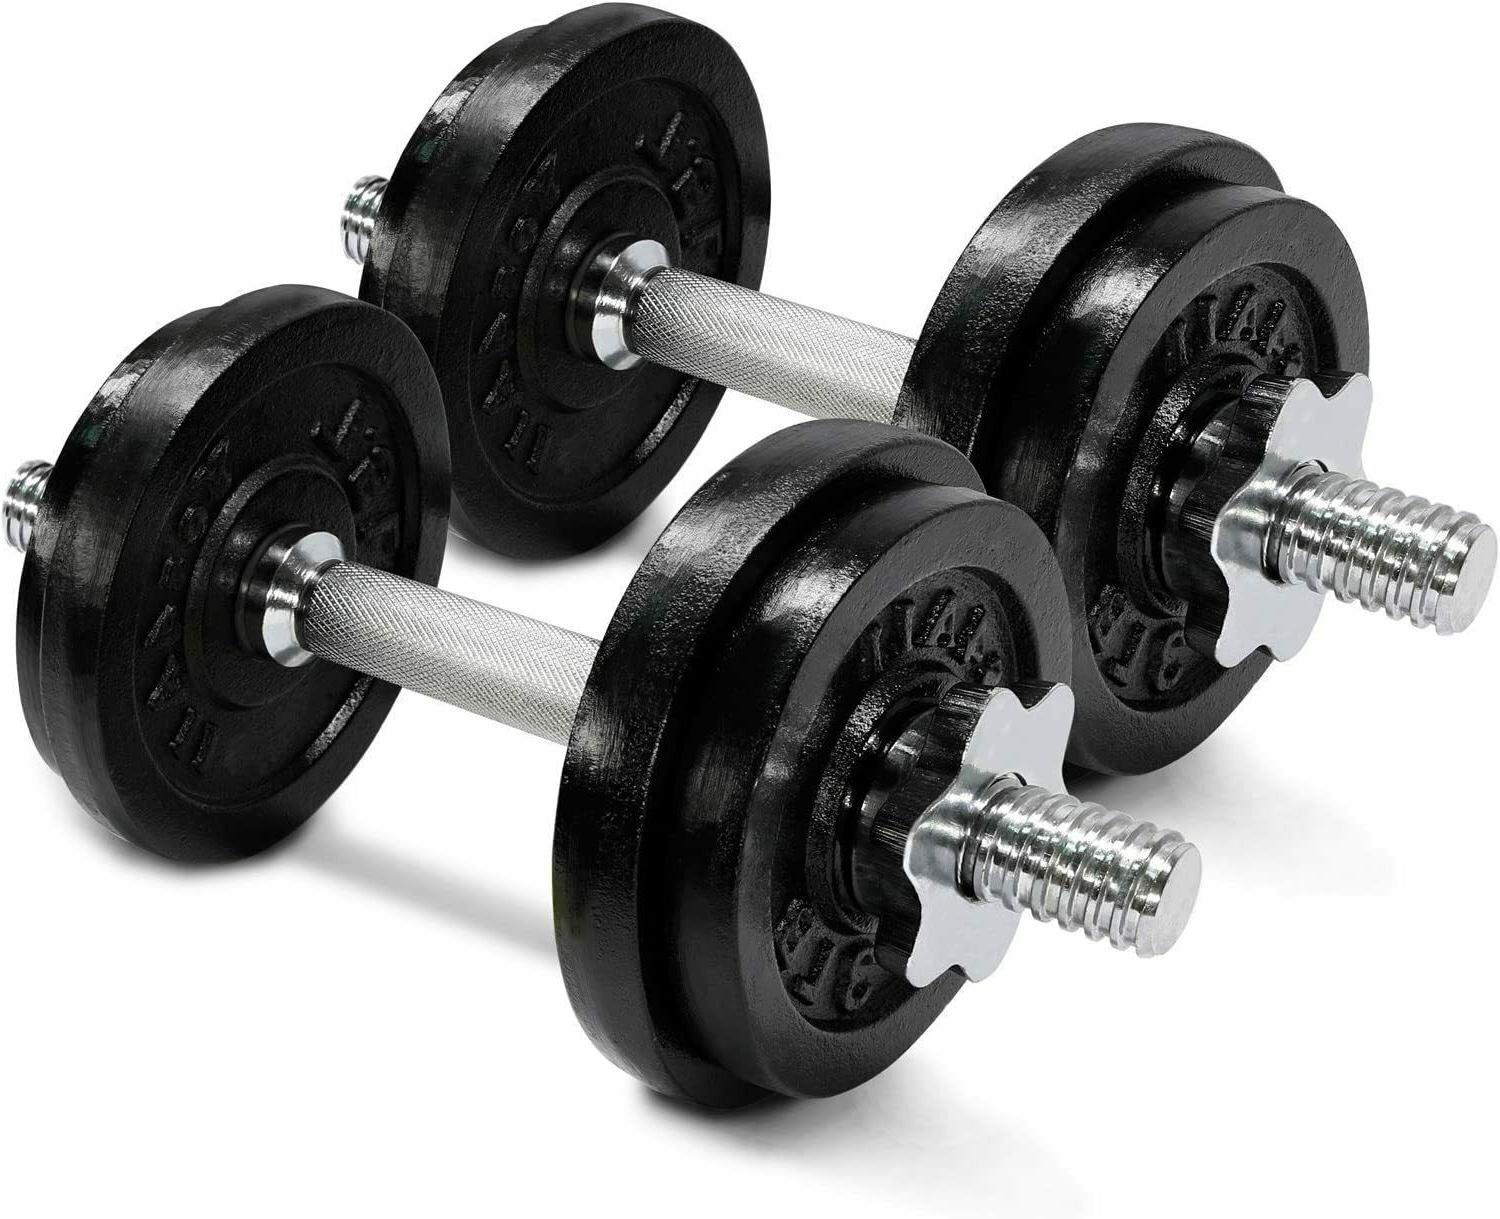 brand new 40lb adjustable dumbbell weight set